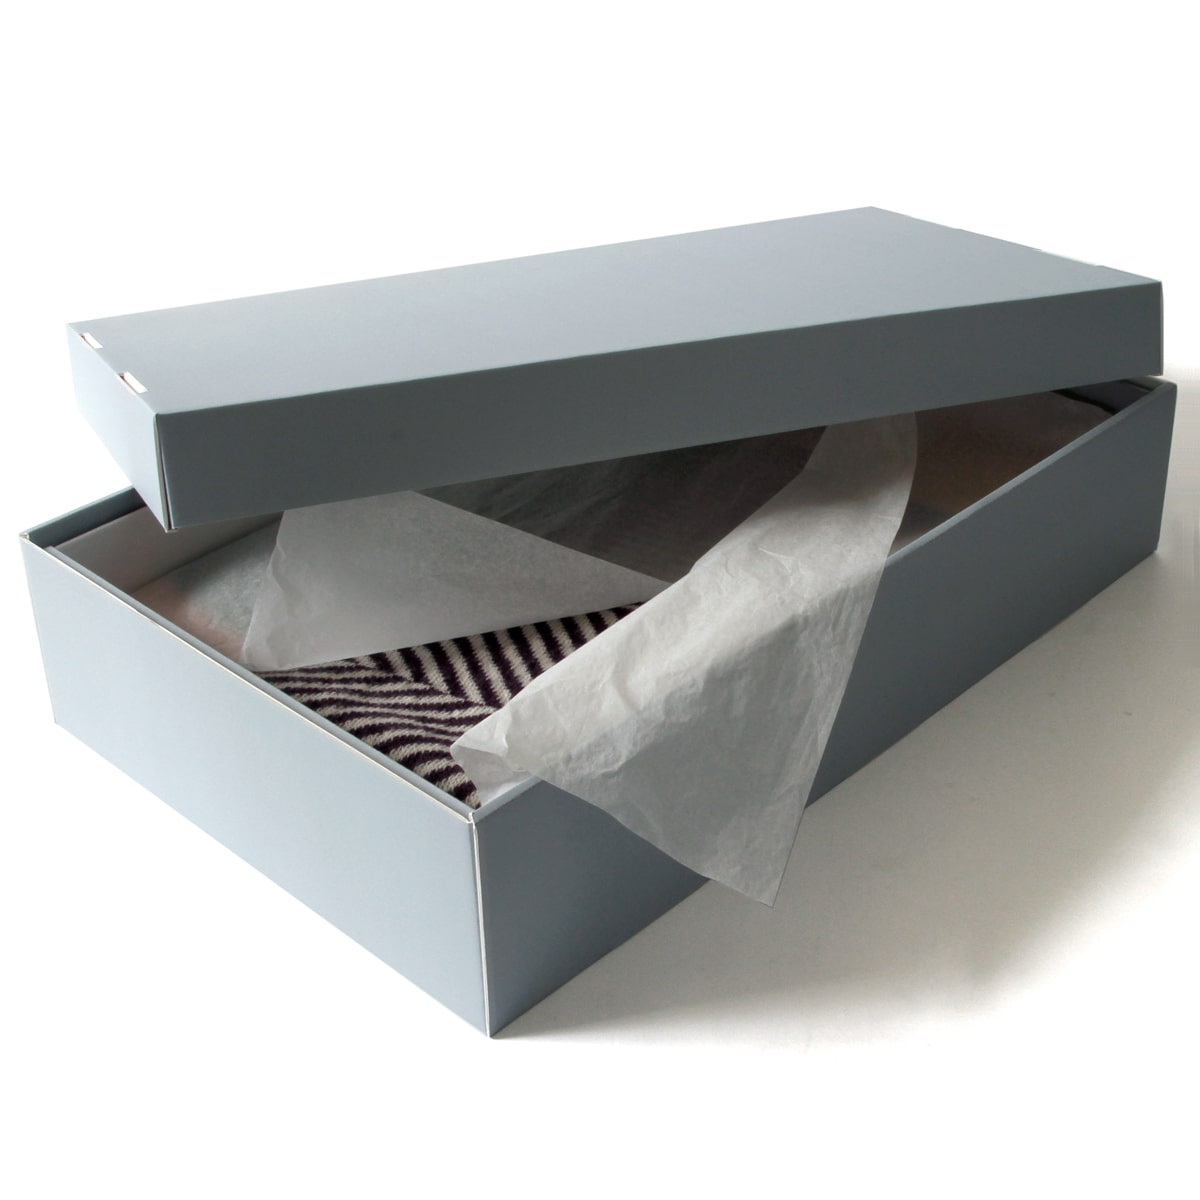 Flat storage is ideal for most textiles because it provides support for the entire textile, thus freeing the textile fibres from the stress of supporting their own weight. When flat storage is enclosed, it also protects the artifact from water damage, dust, and light. When storing textiles flat, it.